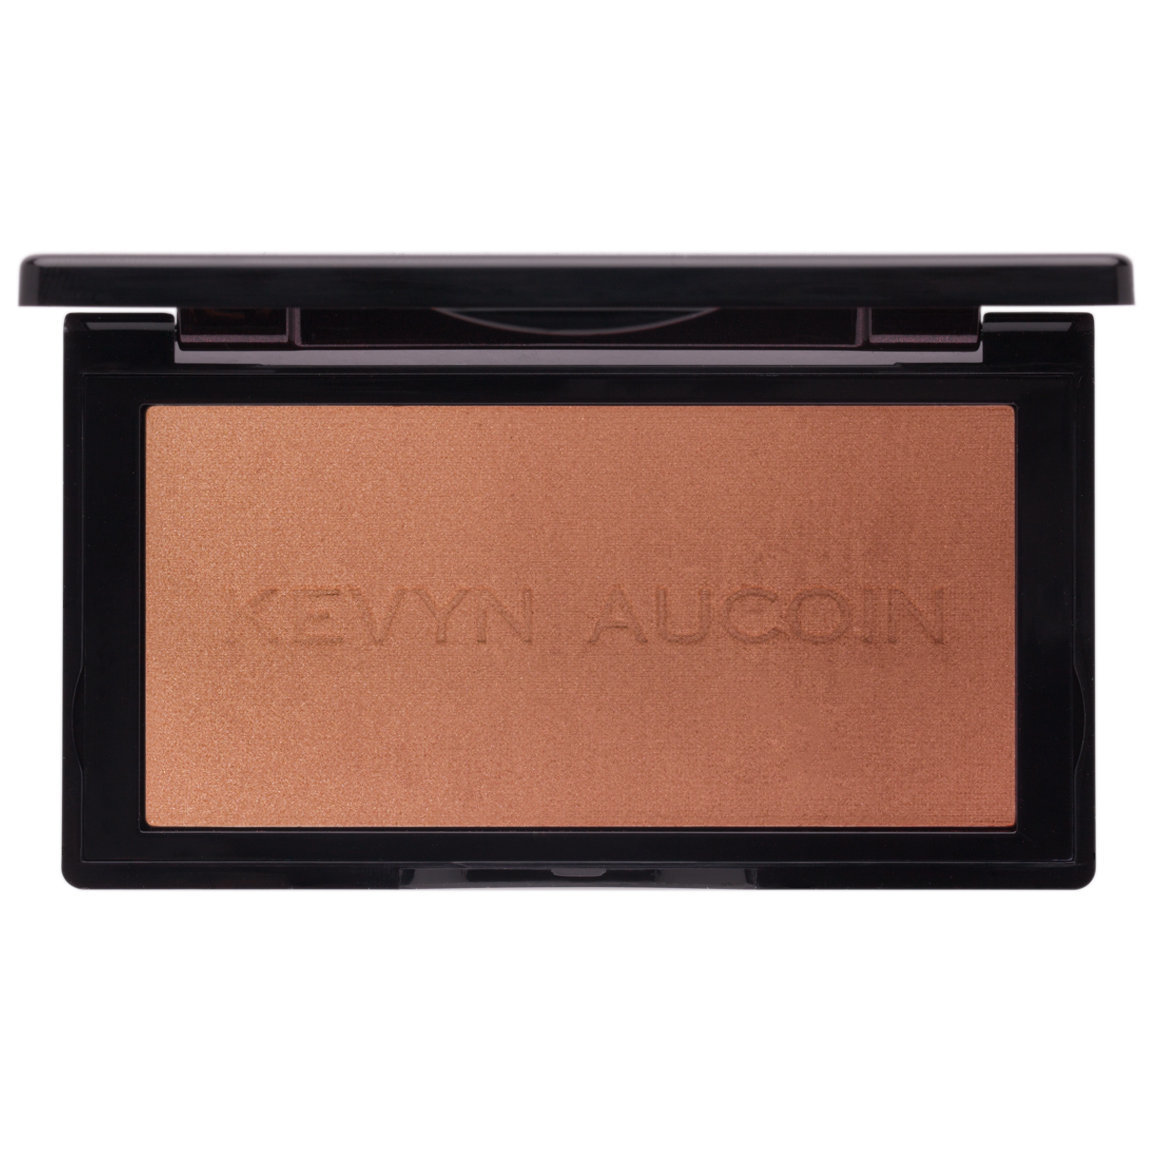 Kevyn Aucoin The Neo-Bronzer Dusk Medium product swatch.